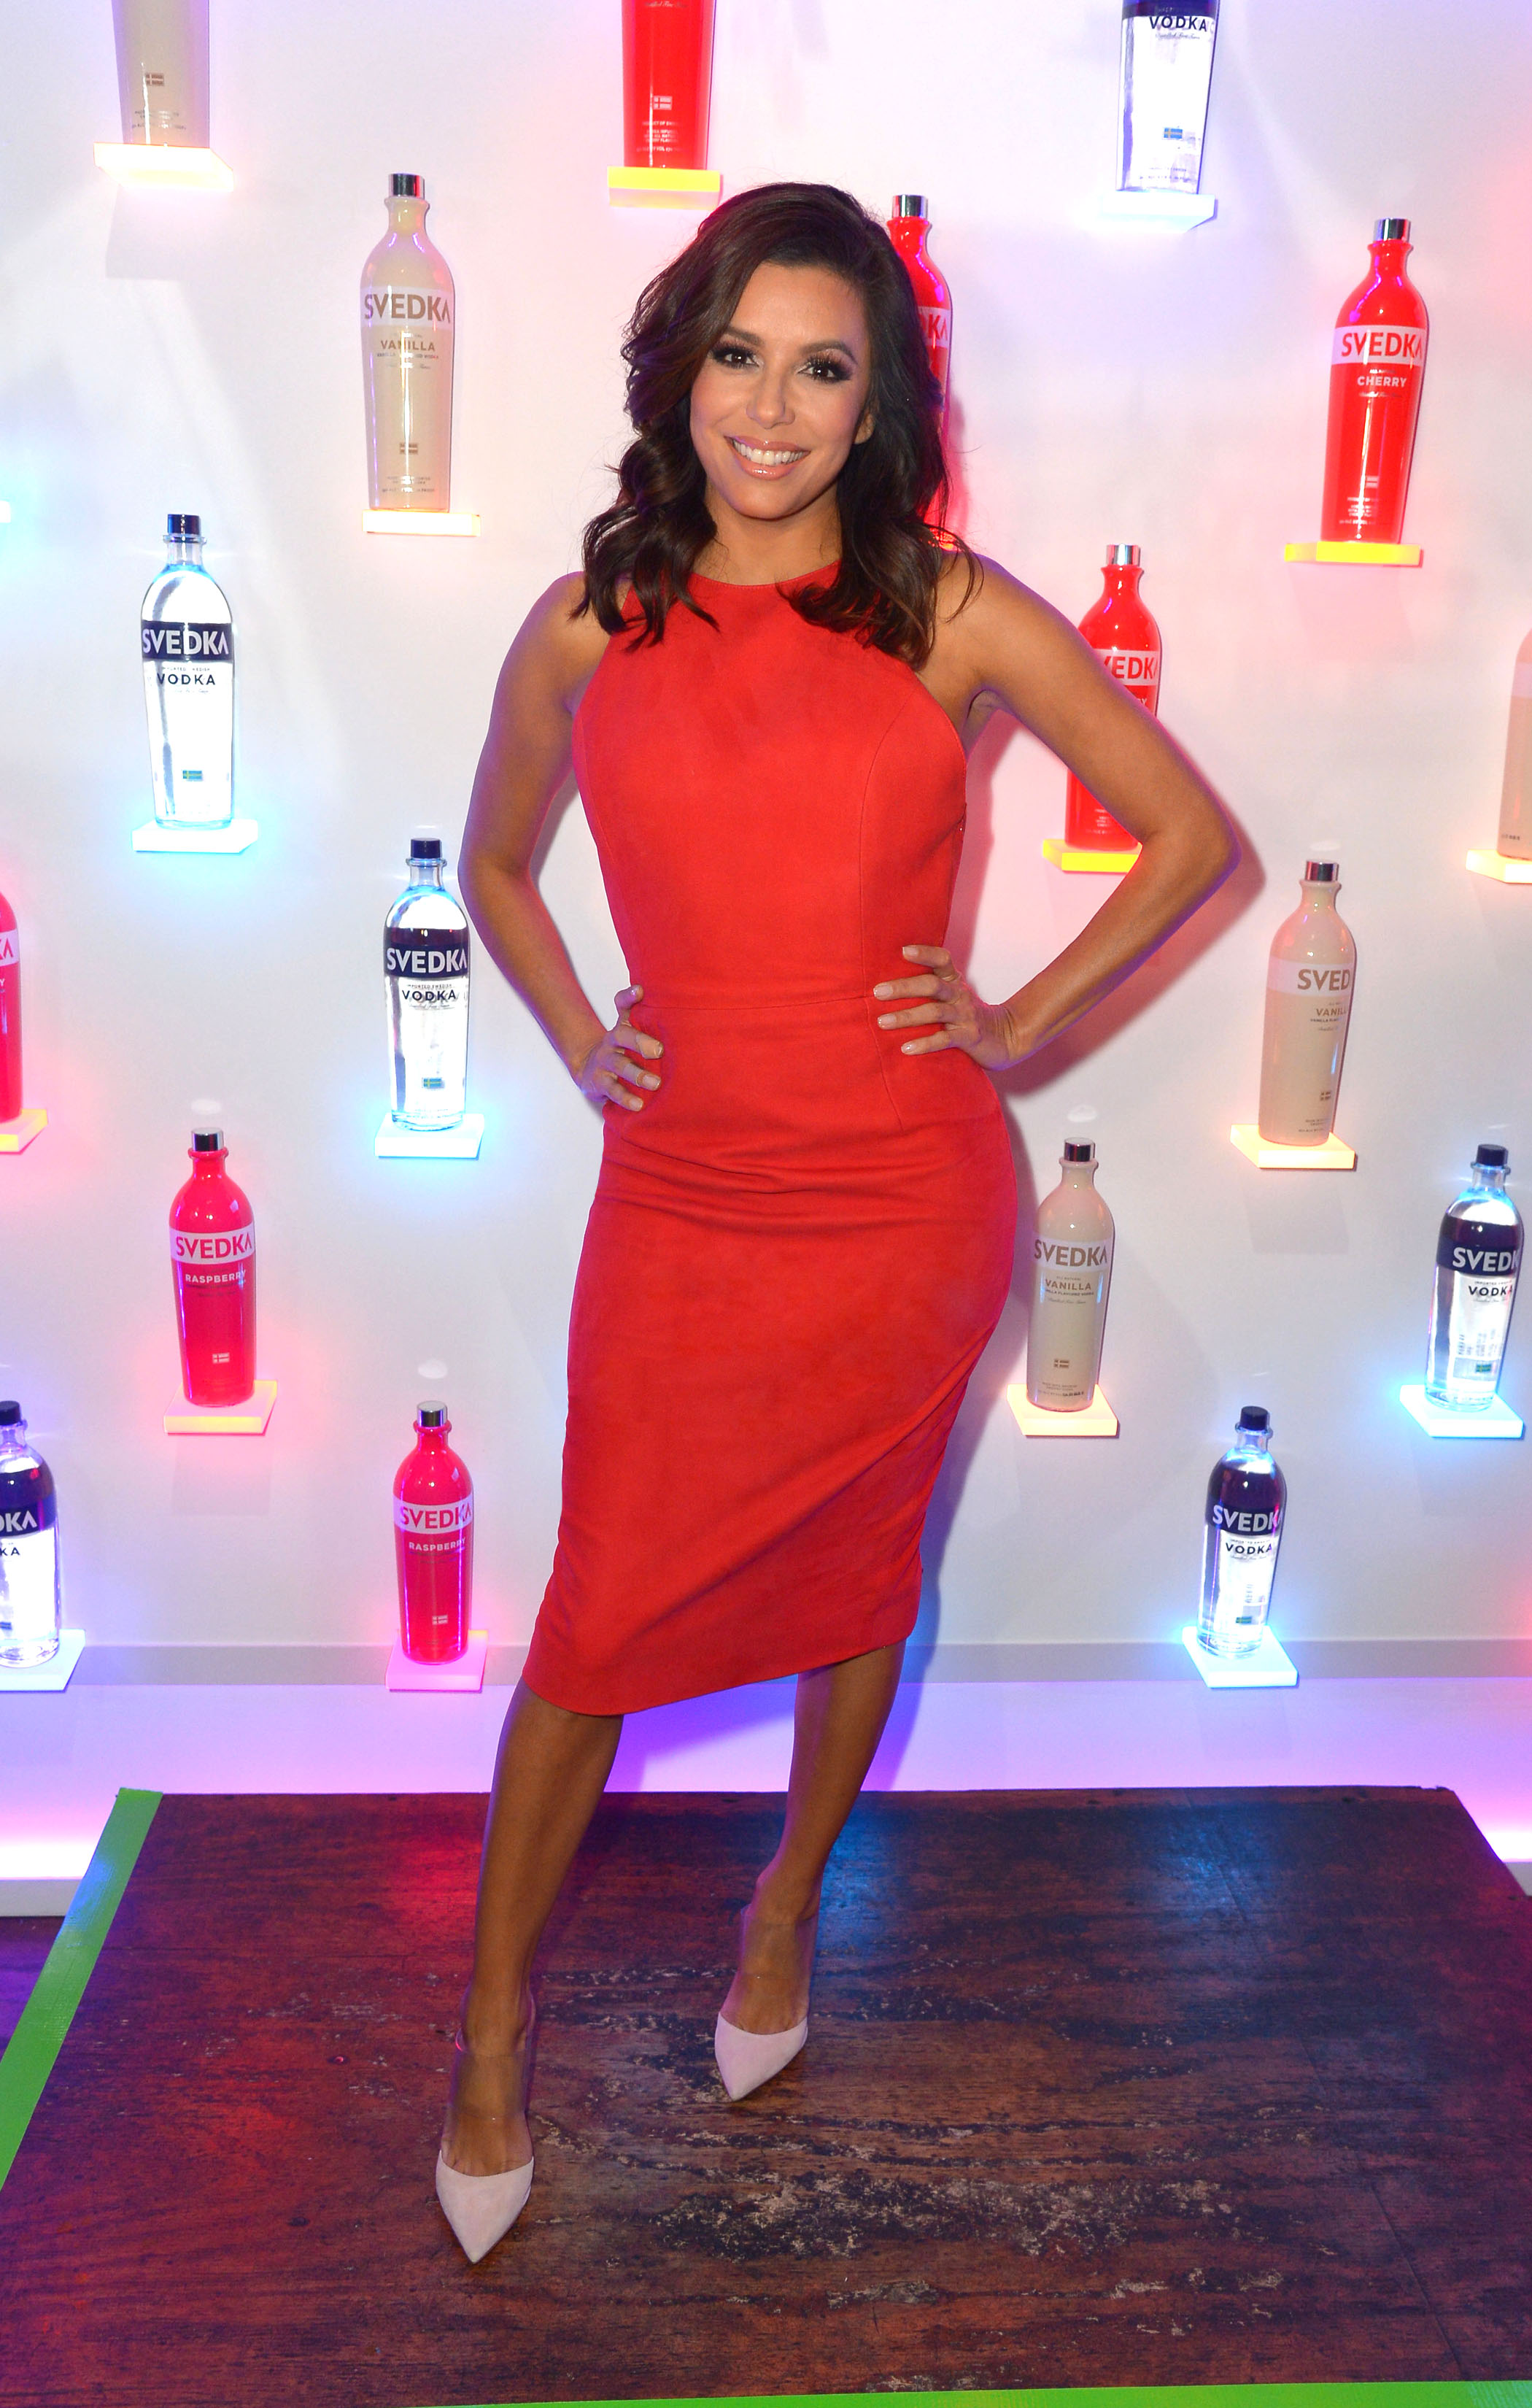 Eva Longoria Attends SVEDKA Vodka's Stupid Cupid Valentine's Day Bash